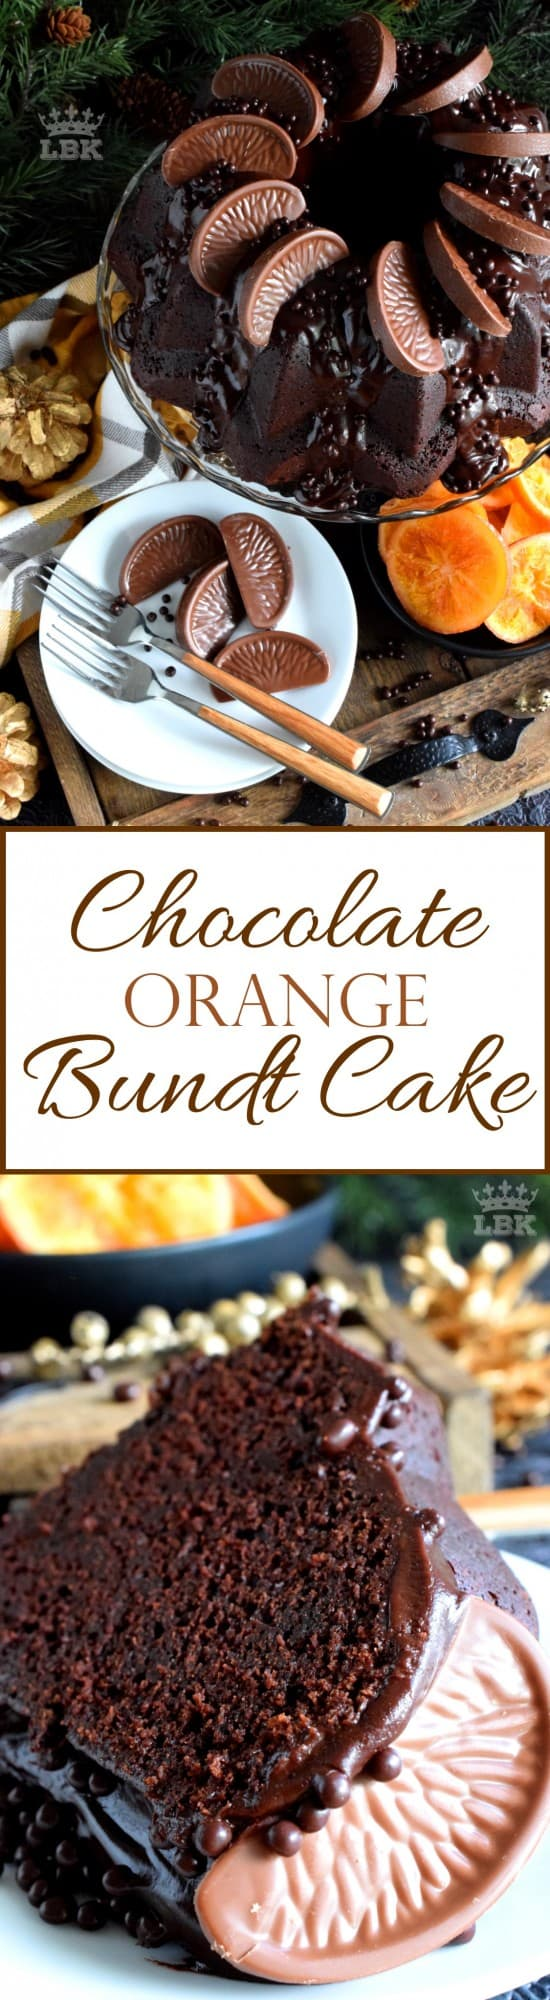 Chocolate Orange Bundt Cake - When you combine chocolate and orange, they form the perfect flavour combination; and these flavours are bold and bright in this bundt cake.#chocolate #orange #bundt #cake #bundtbakers #Christmas #holiday